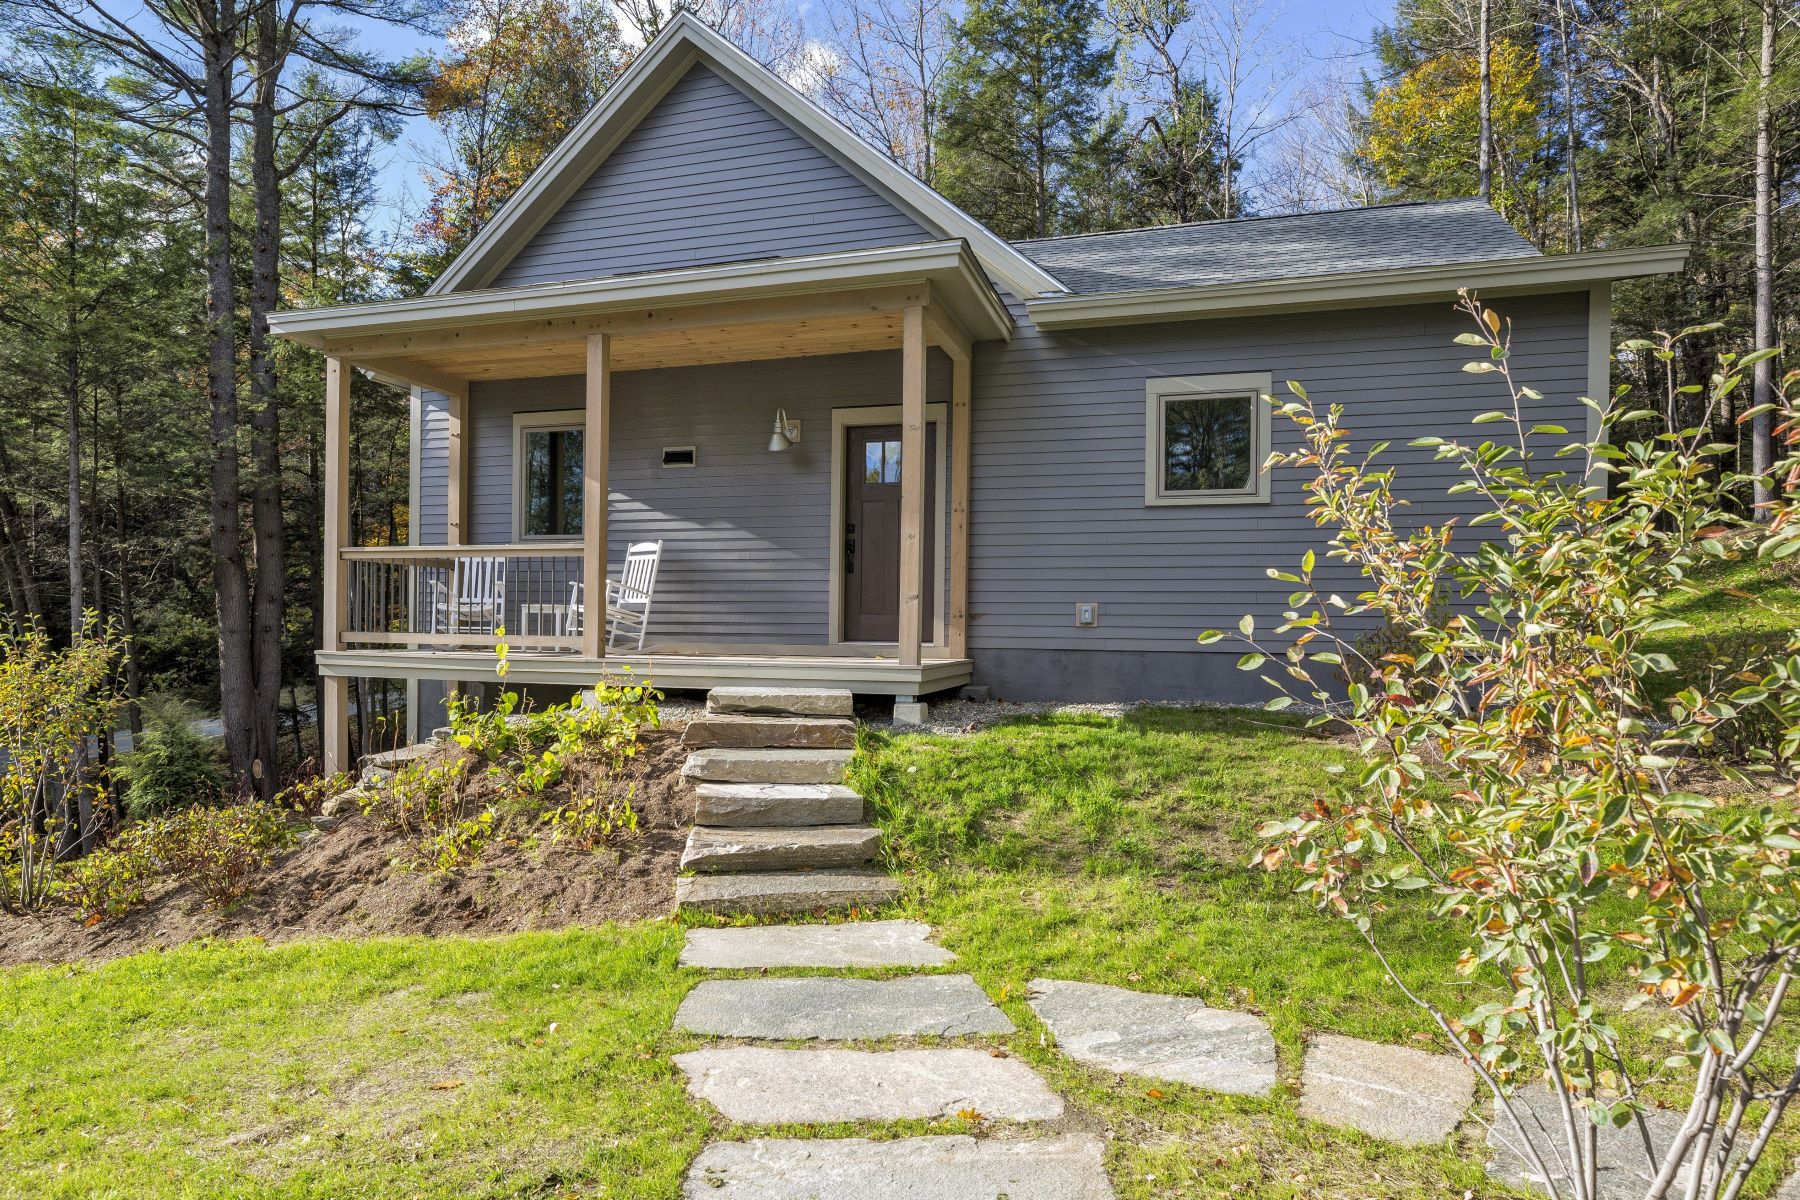 Single Family Homes for Sale at Three Bedroom Farmhouse in Quechee Lakes 1047 Willard Rd 5209 Hartford, Vermont 05059 United States